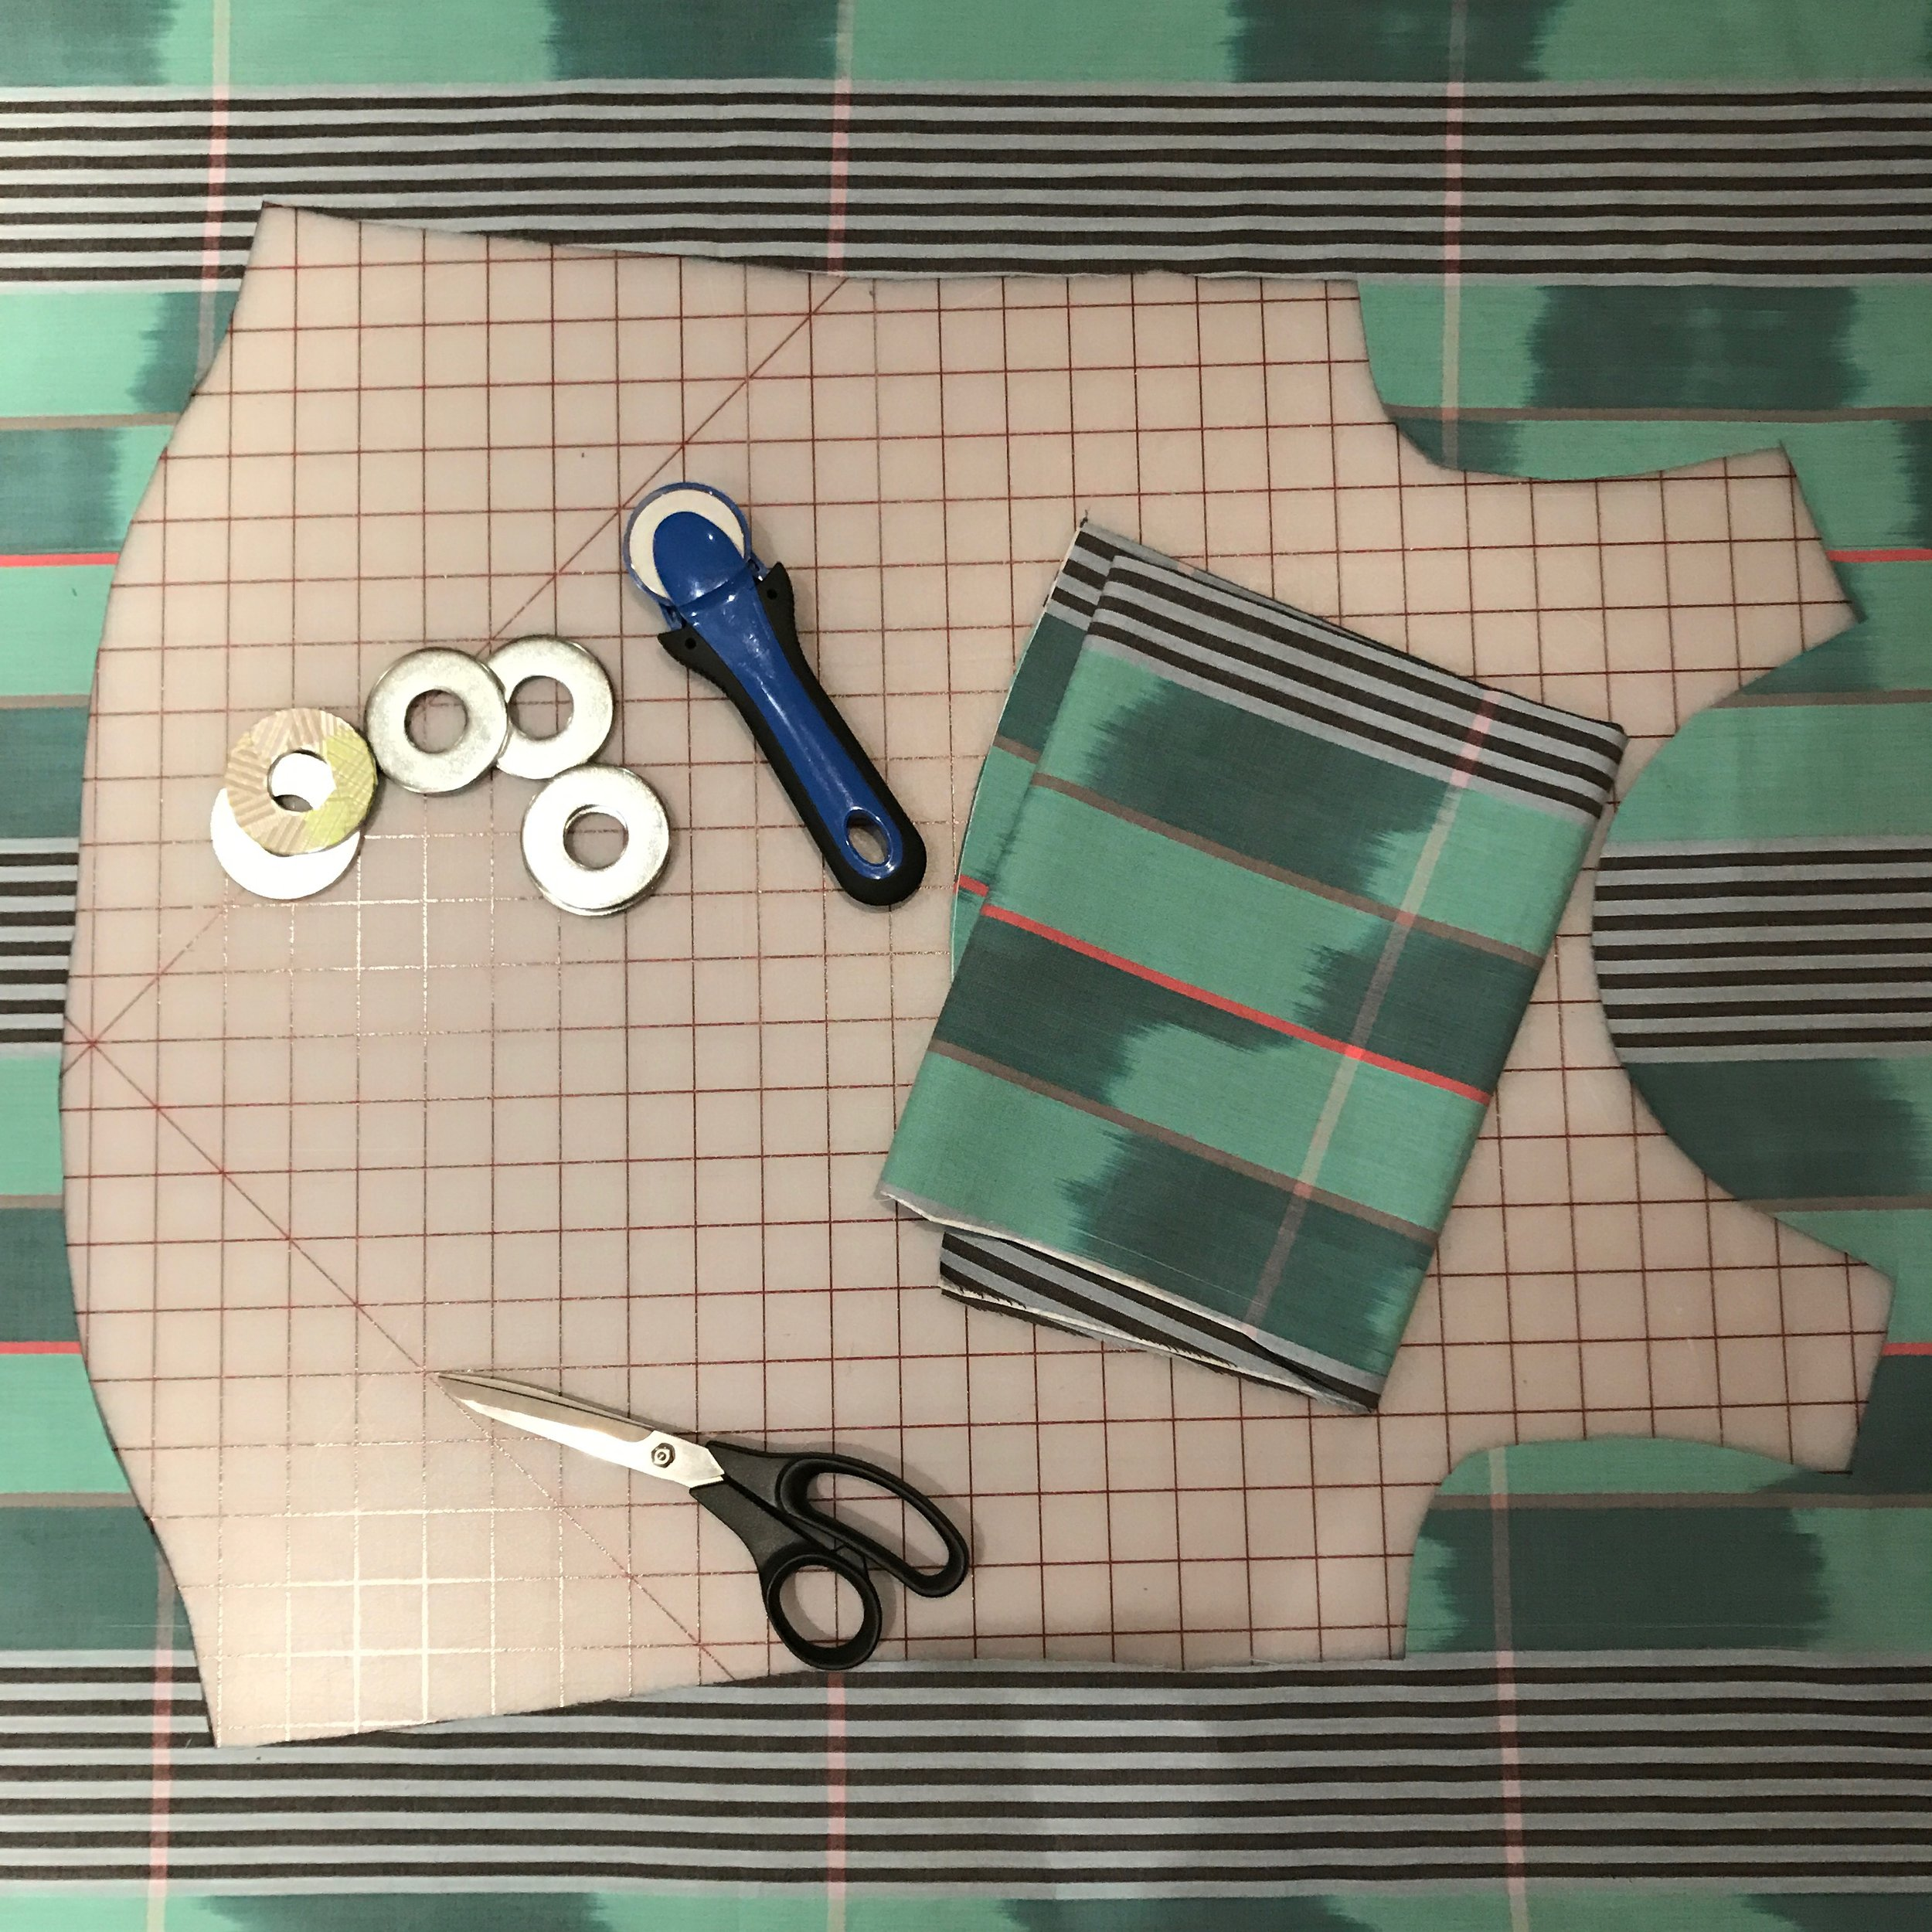 By laying out pattern pieces on a single layer of fabric I could dial in the striped symmetry.